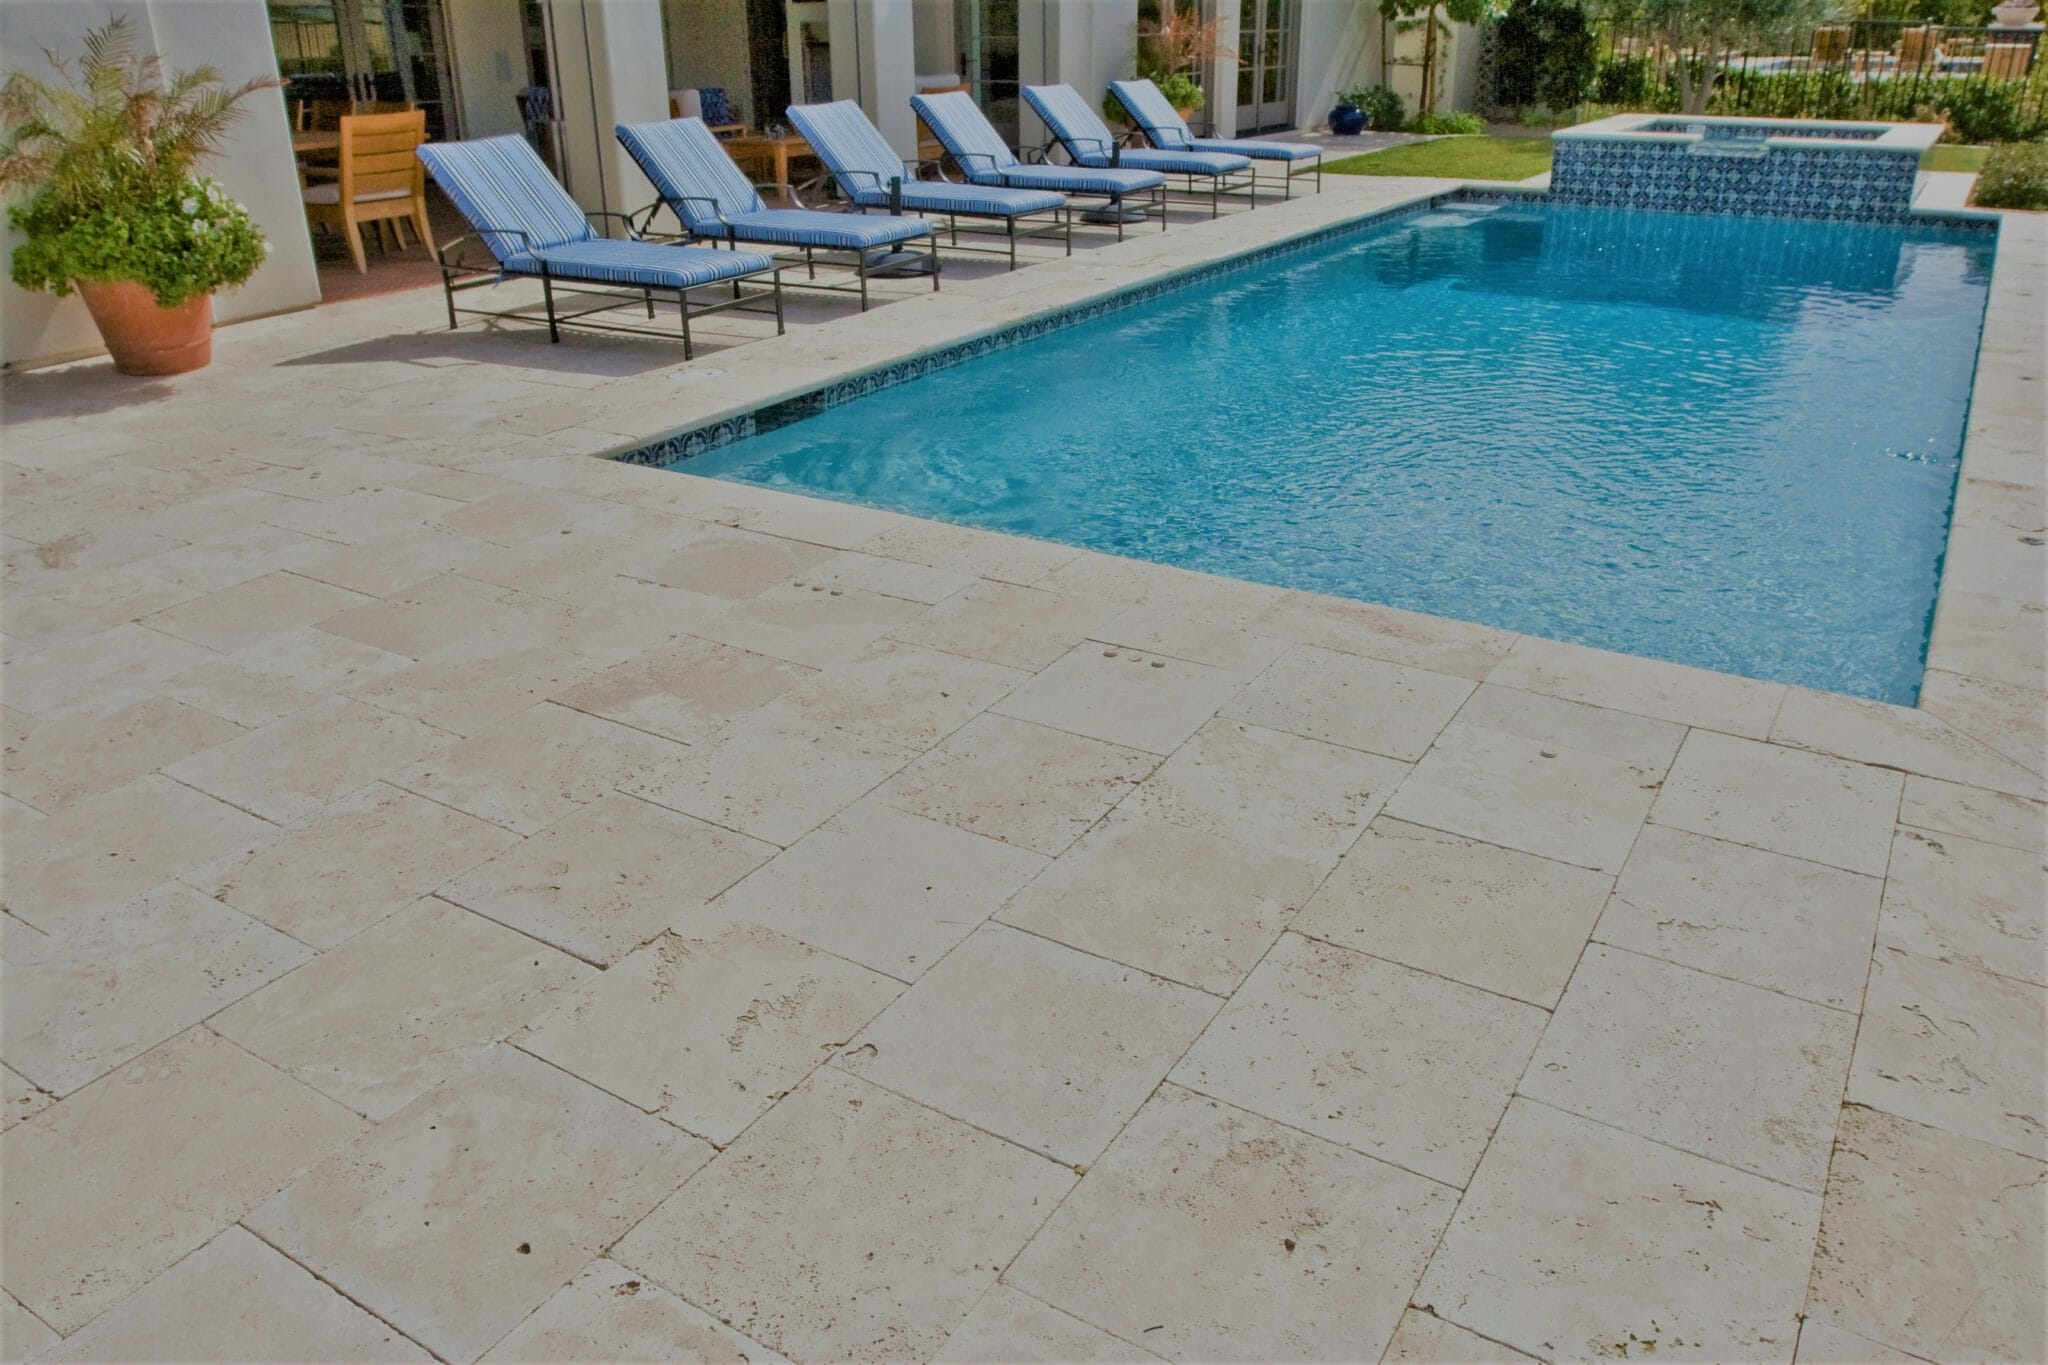 Travertine Pavers Around A Swimming Pool In Melbourne Travertine Tiles Melbourne Sydney